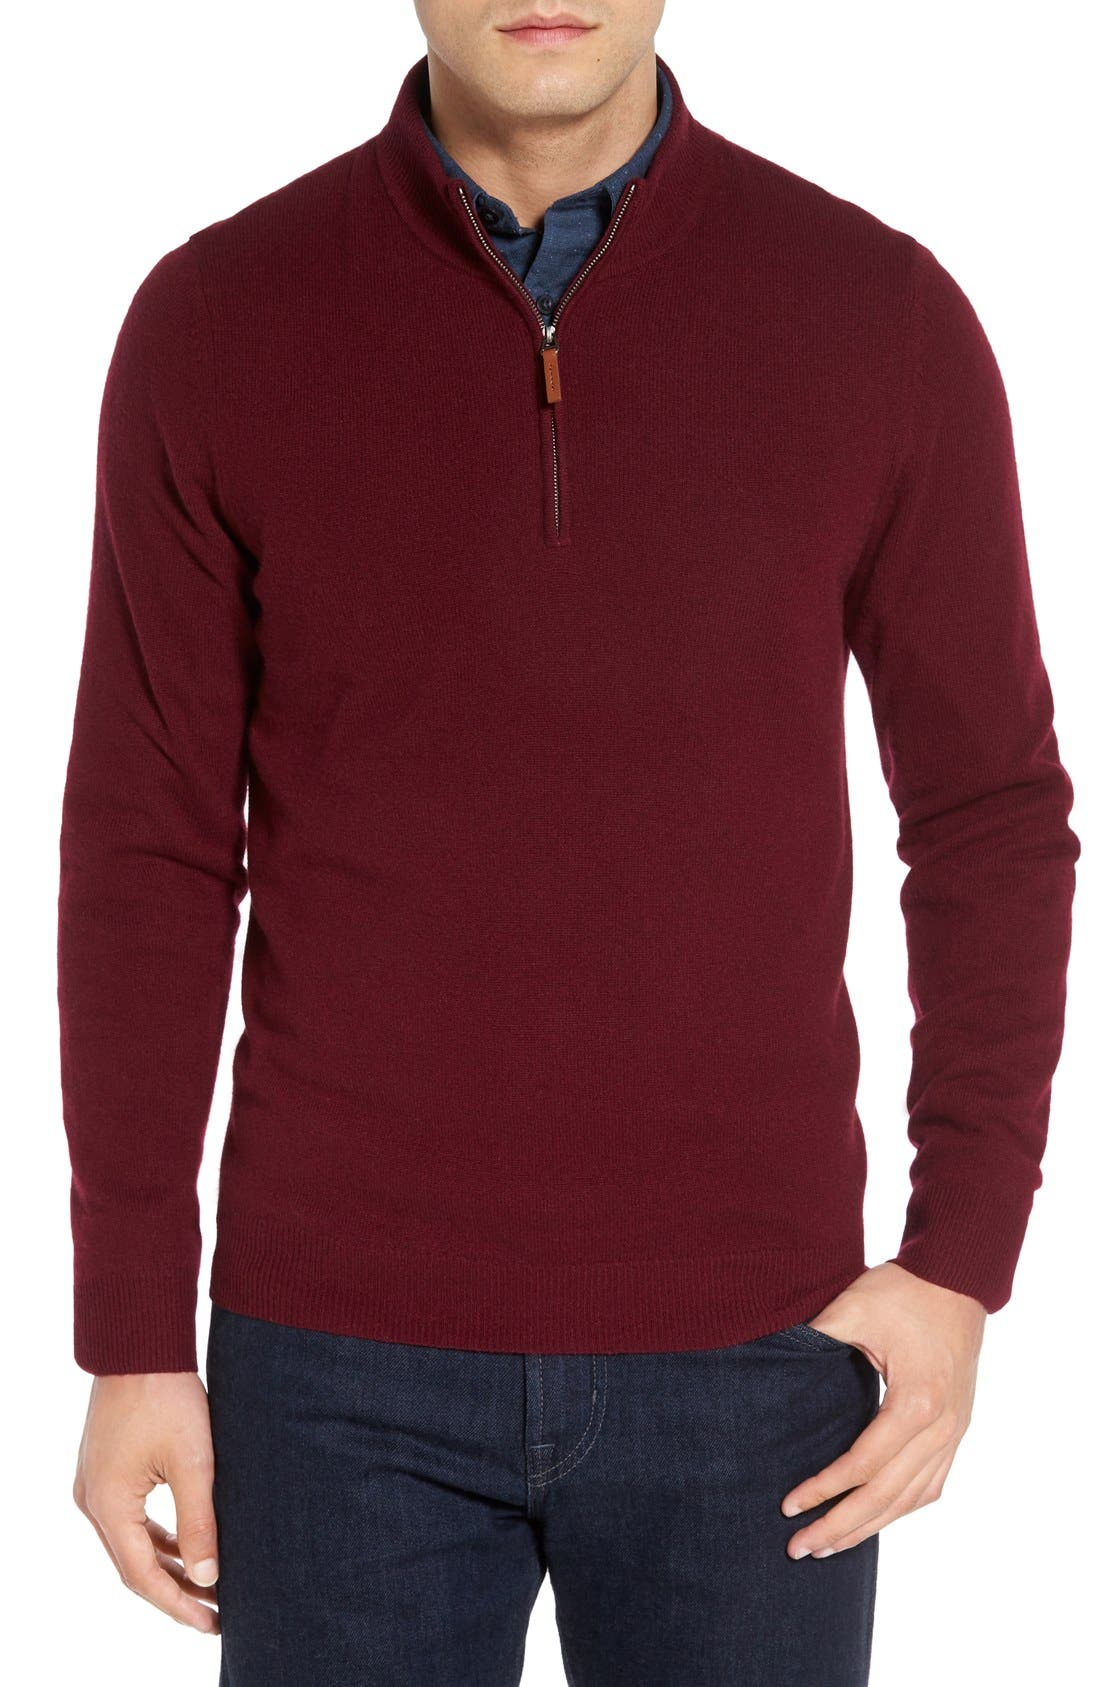 Nordstrom Men's Shop Regular Fit Cashmere Quarter Zip Pullover (Regular & Tall)